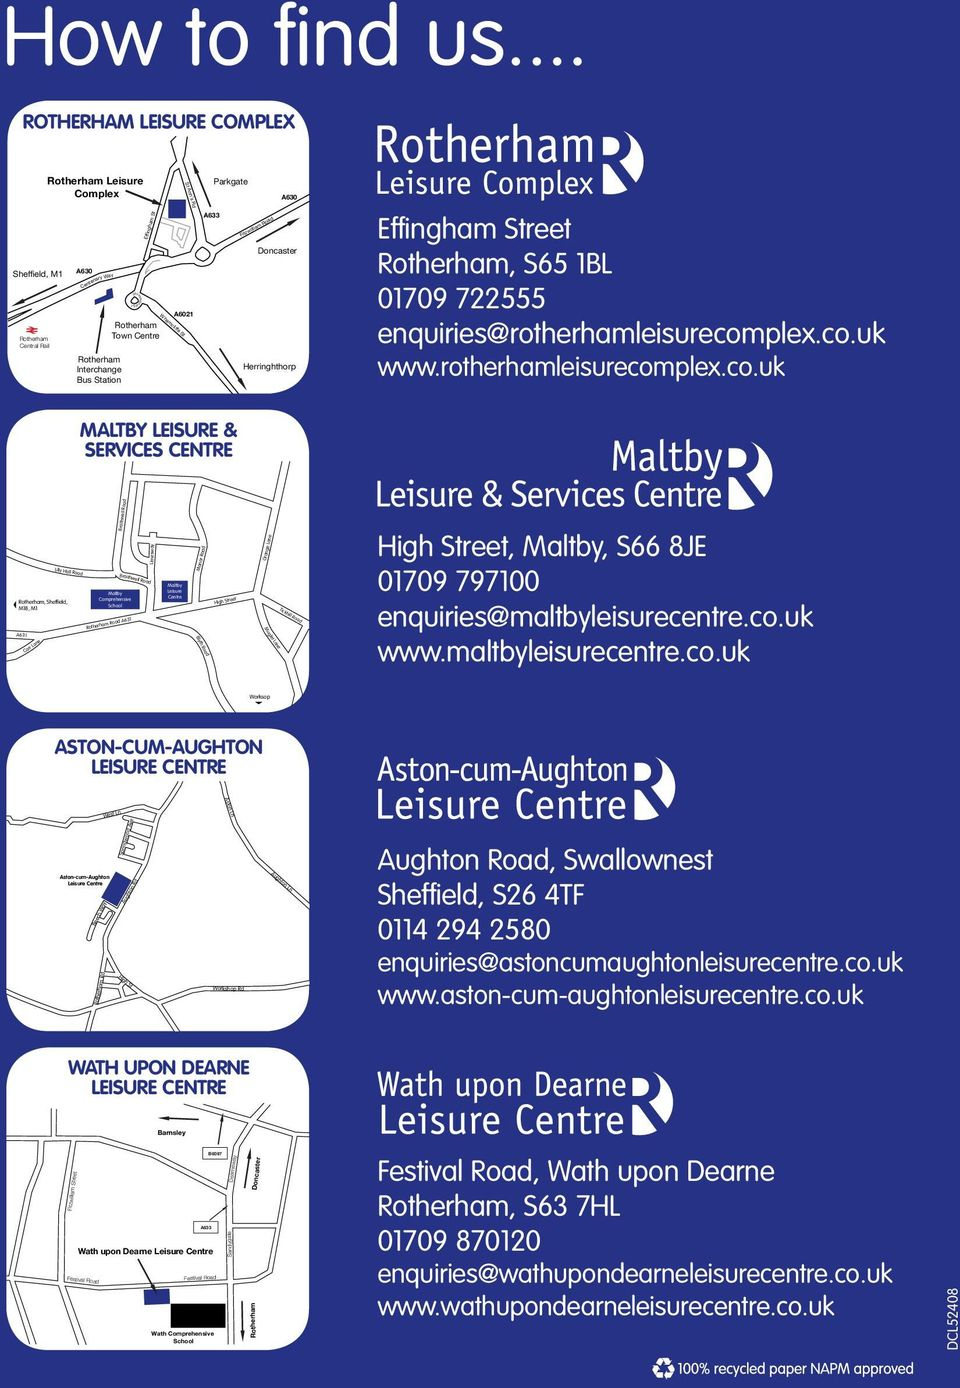 Town Centre Whamcliffe St St Ann s Rd A6021 A633 Parkgate Fitzwilliam Road A630 Doncaster Herringhthorp Clifton Park Effingham Street Rotherham, S65 1BL 01709 722555 enquiries@rotherhamleisurecomplex.